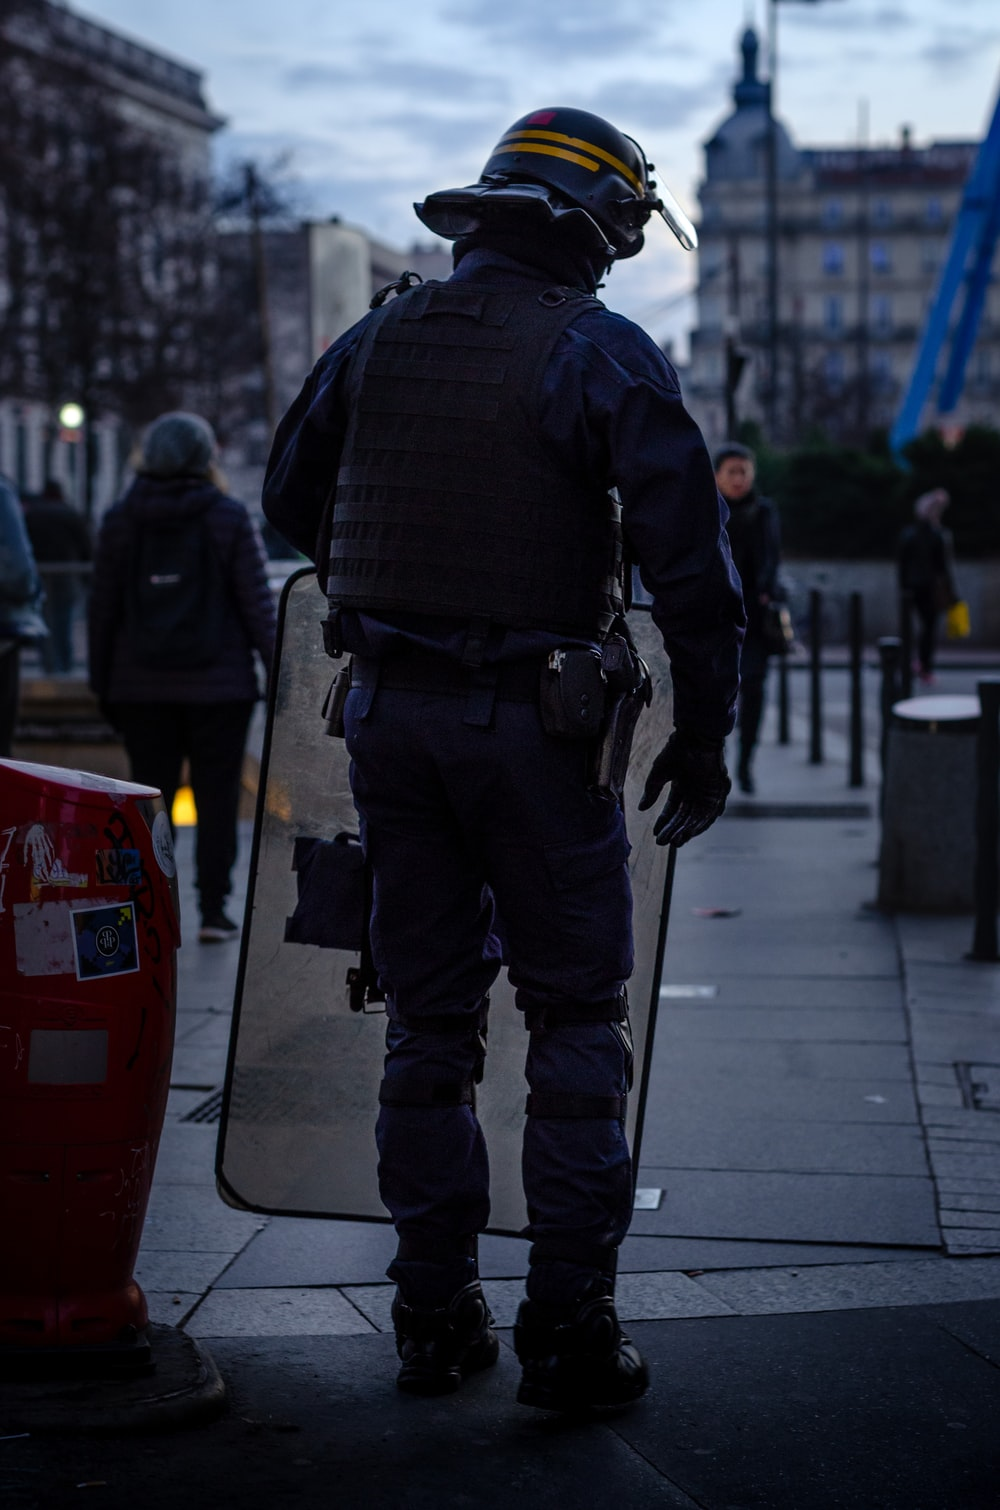 police officer standing and carrying riot shield